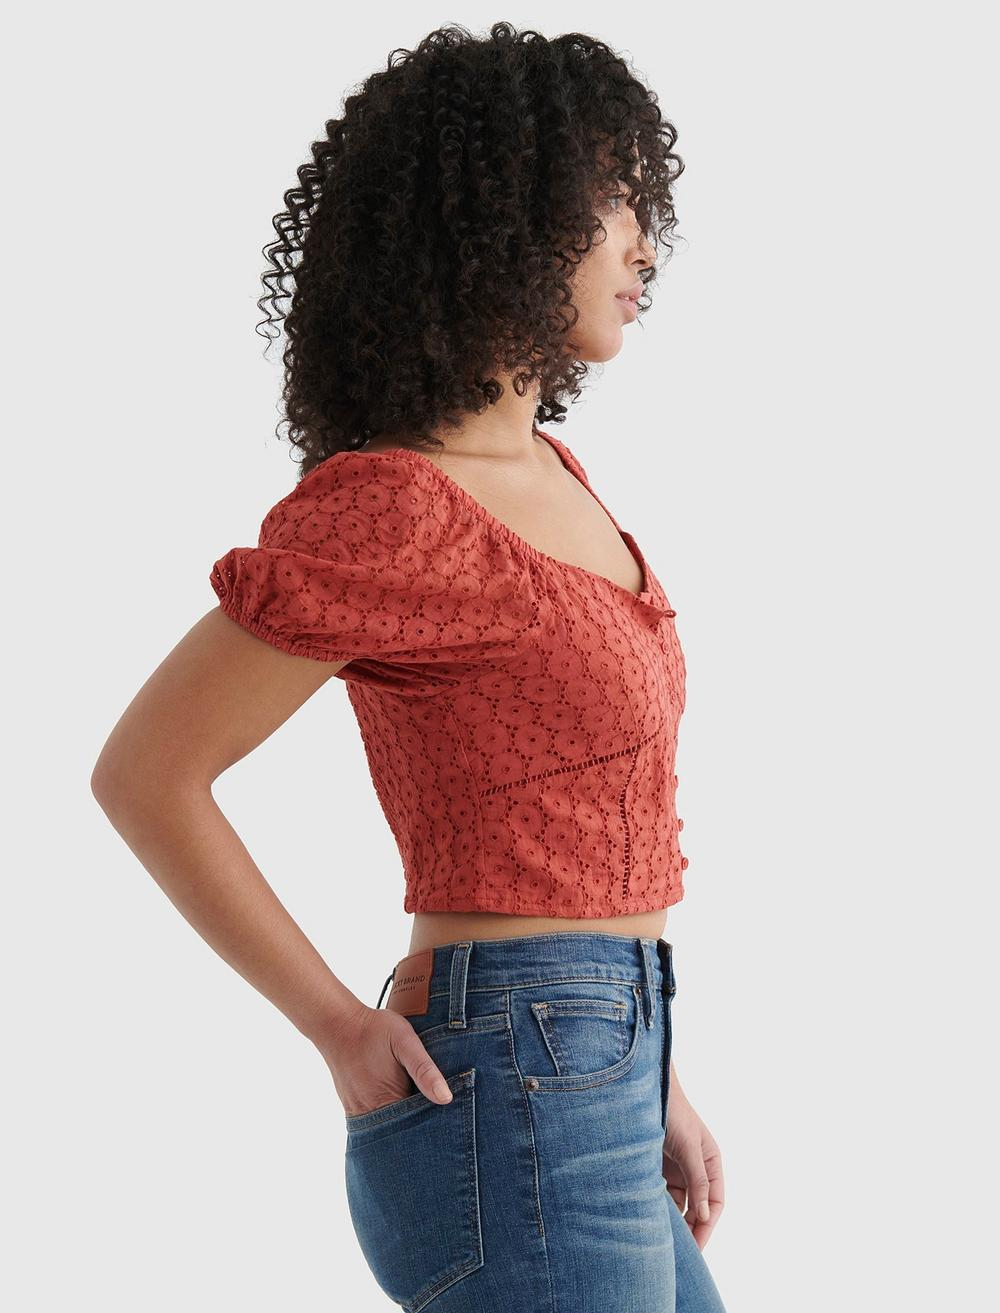 LACE SWEETHEART CROP TOP, image 3